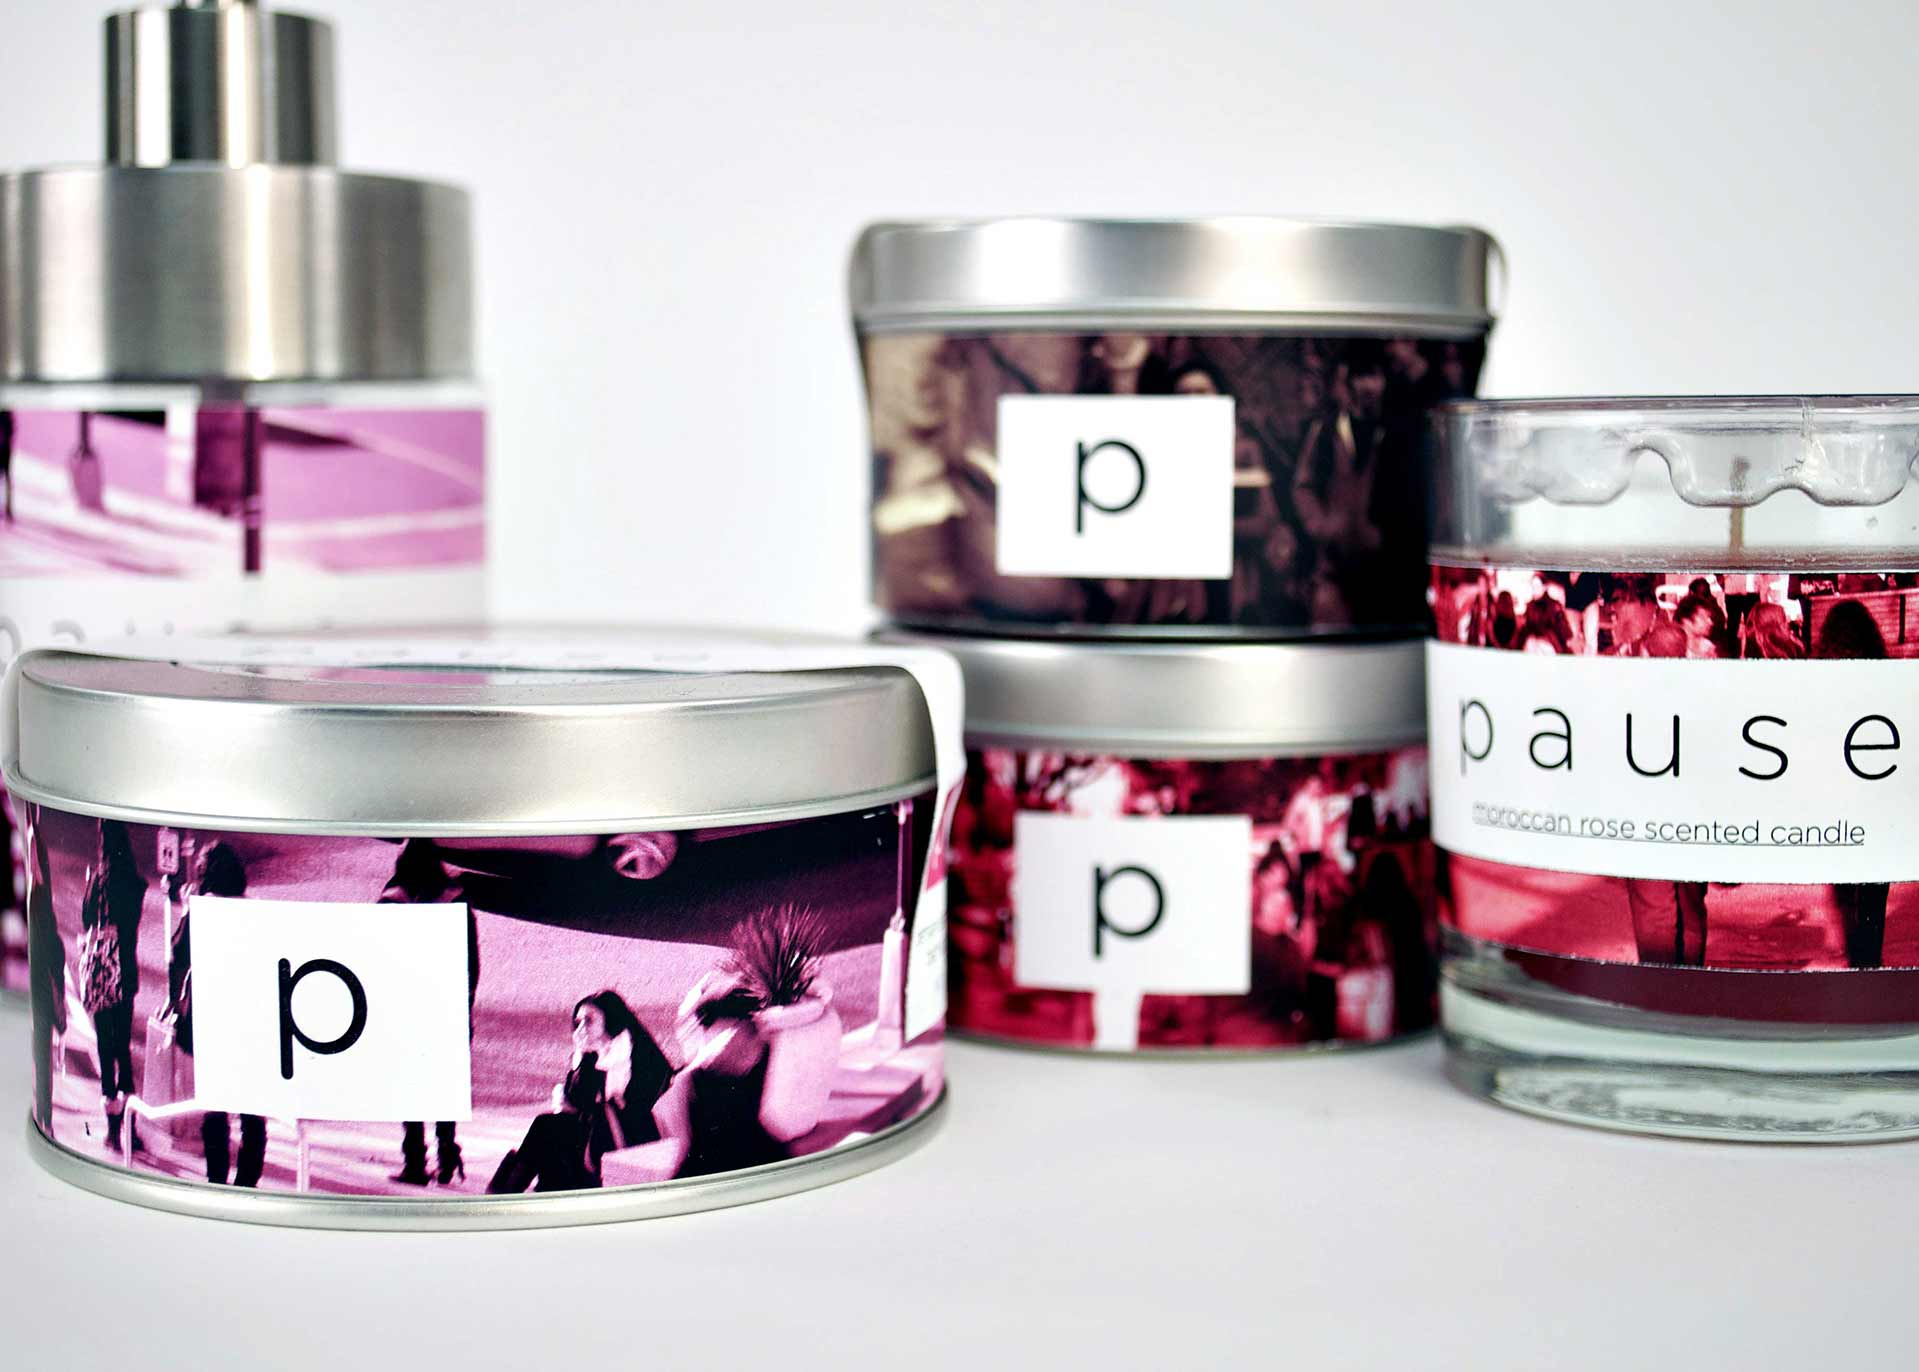 Pause Bath and Beauty Package Design